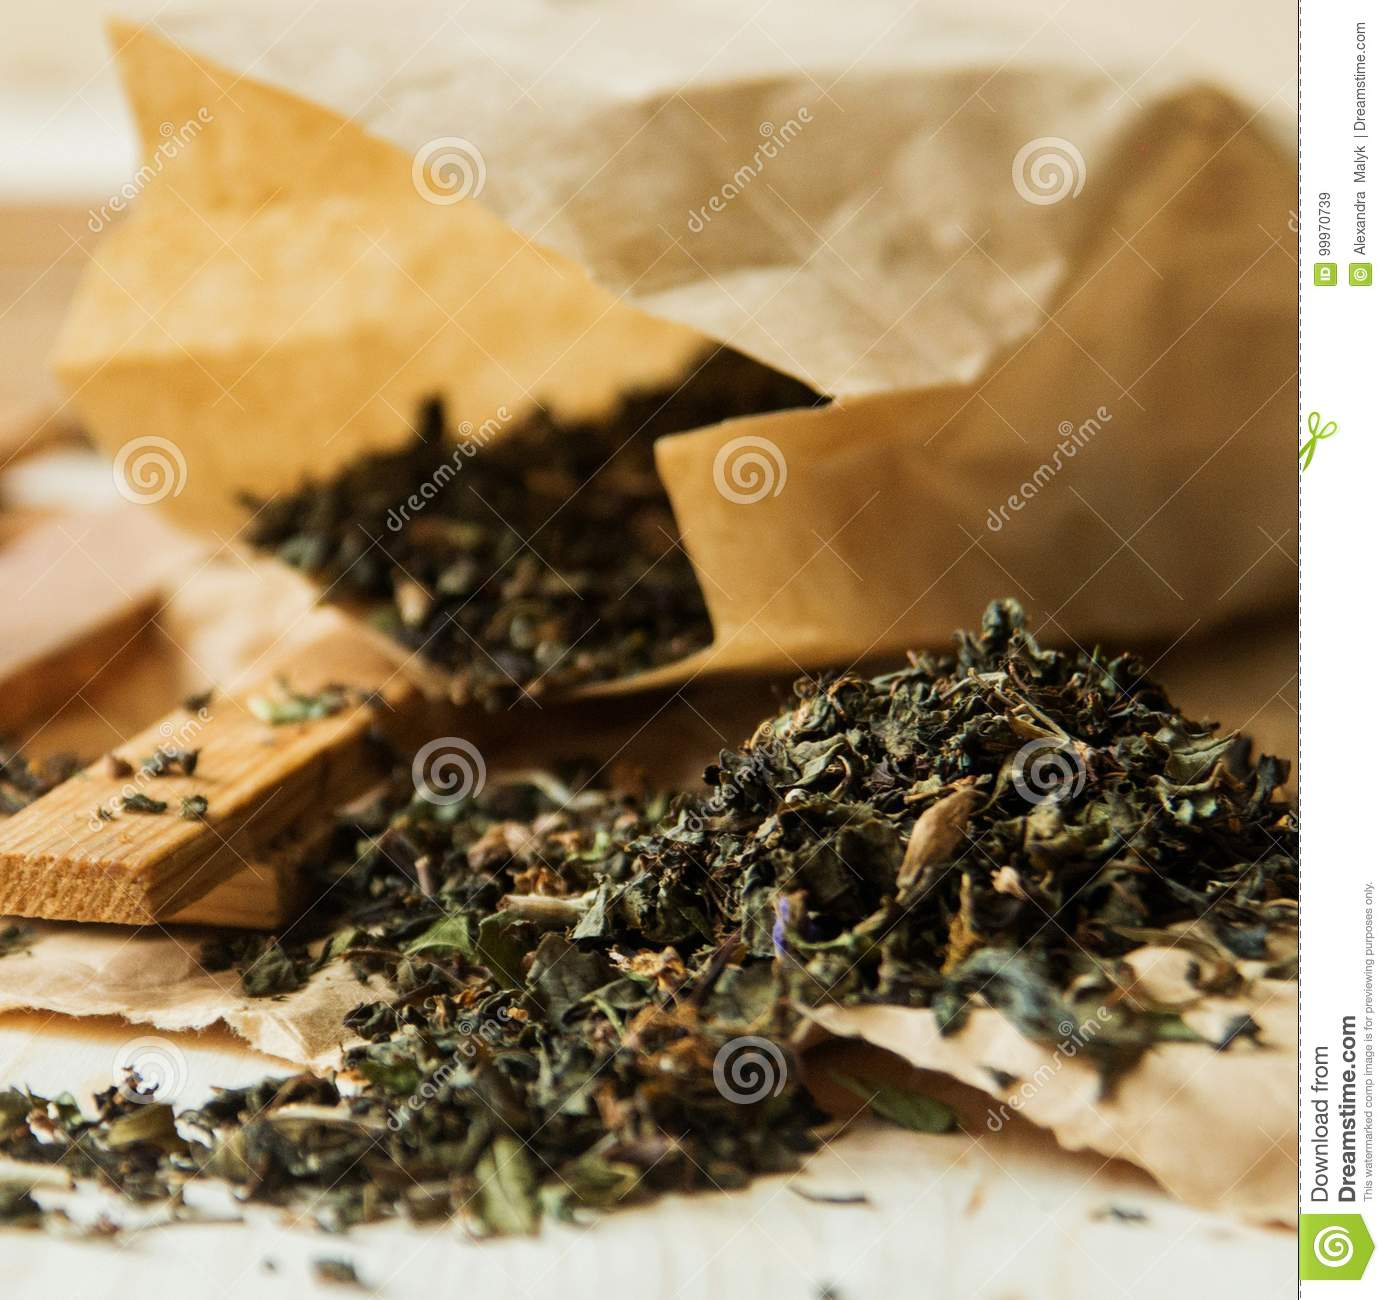 Dried hibiscus flower tea in a paper bag isolated on white backg dried hibiscus flower tea in a paper bag isolated on white backg izmirmasajfo